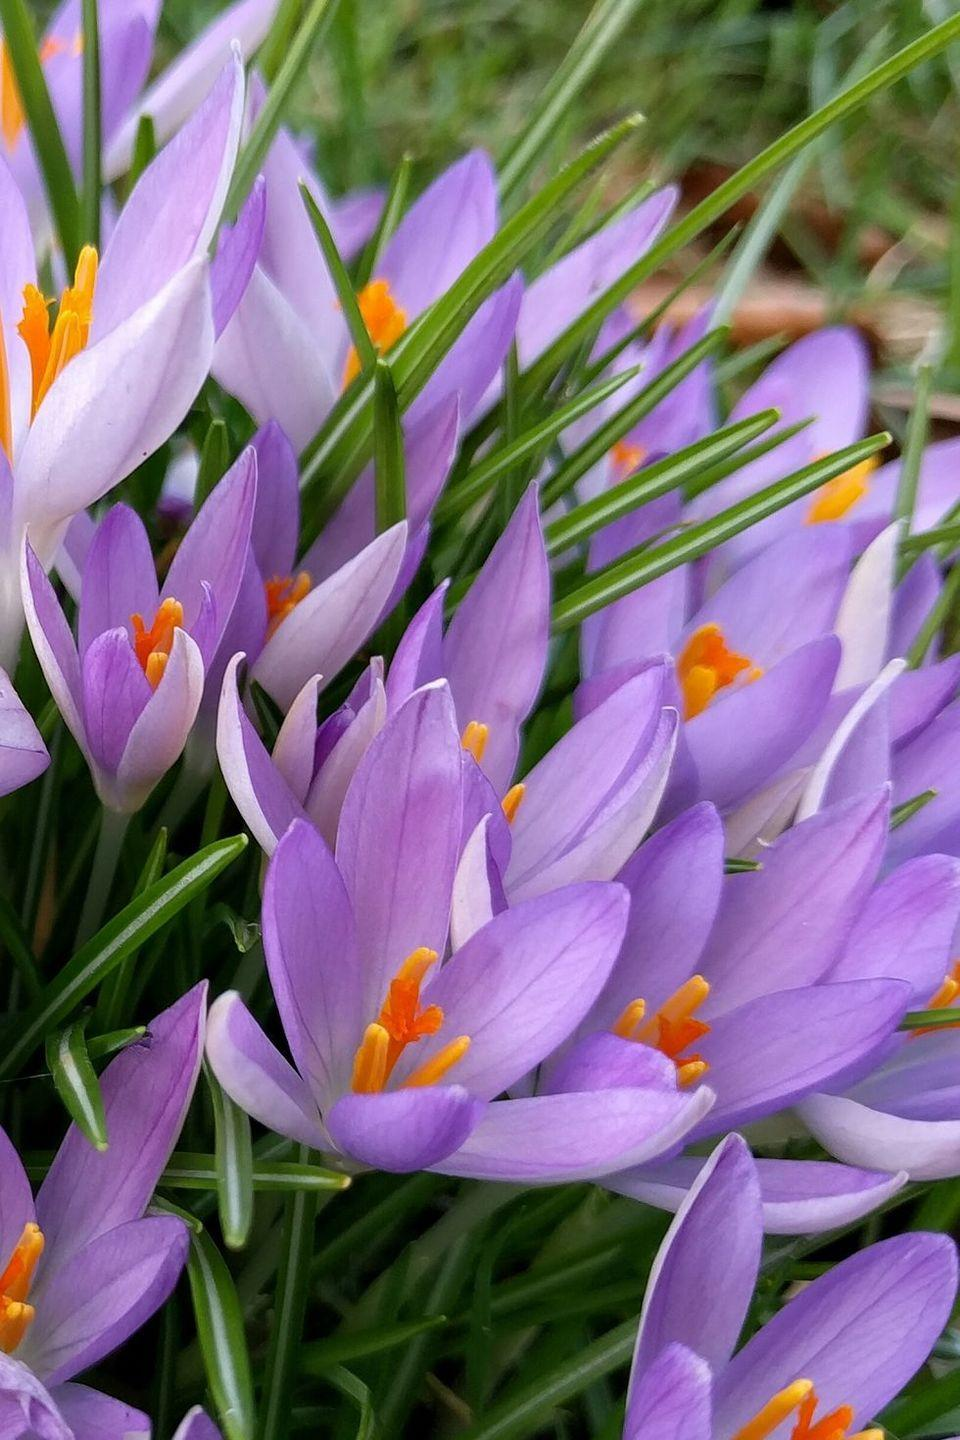 <p>They're the first signs of spring, so it makes sense that crocuses symbolize youthful happiness. It's also the way we feel when we see them start peeking through the snow at the first bit of warmth. </p>